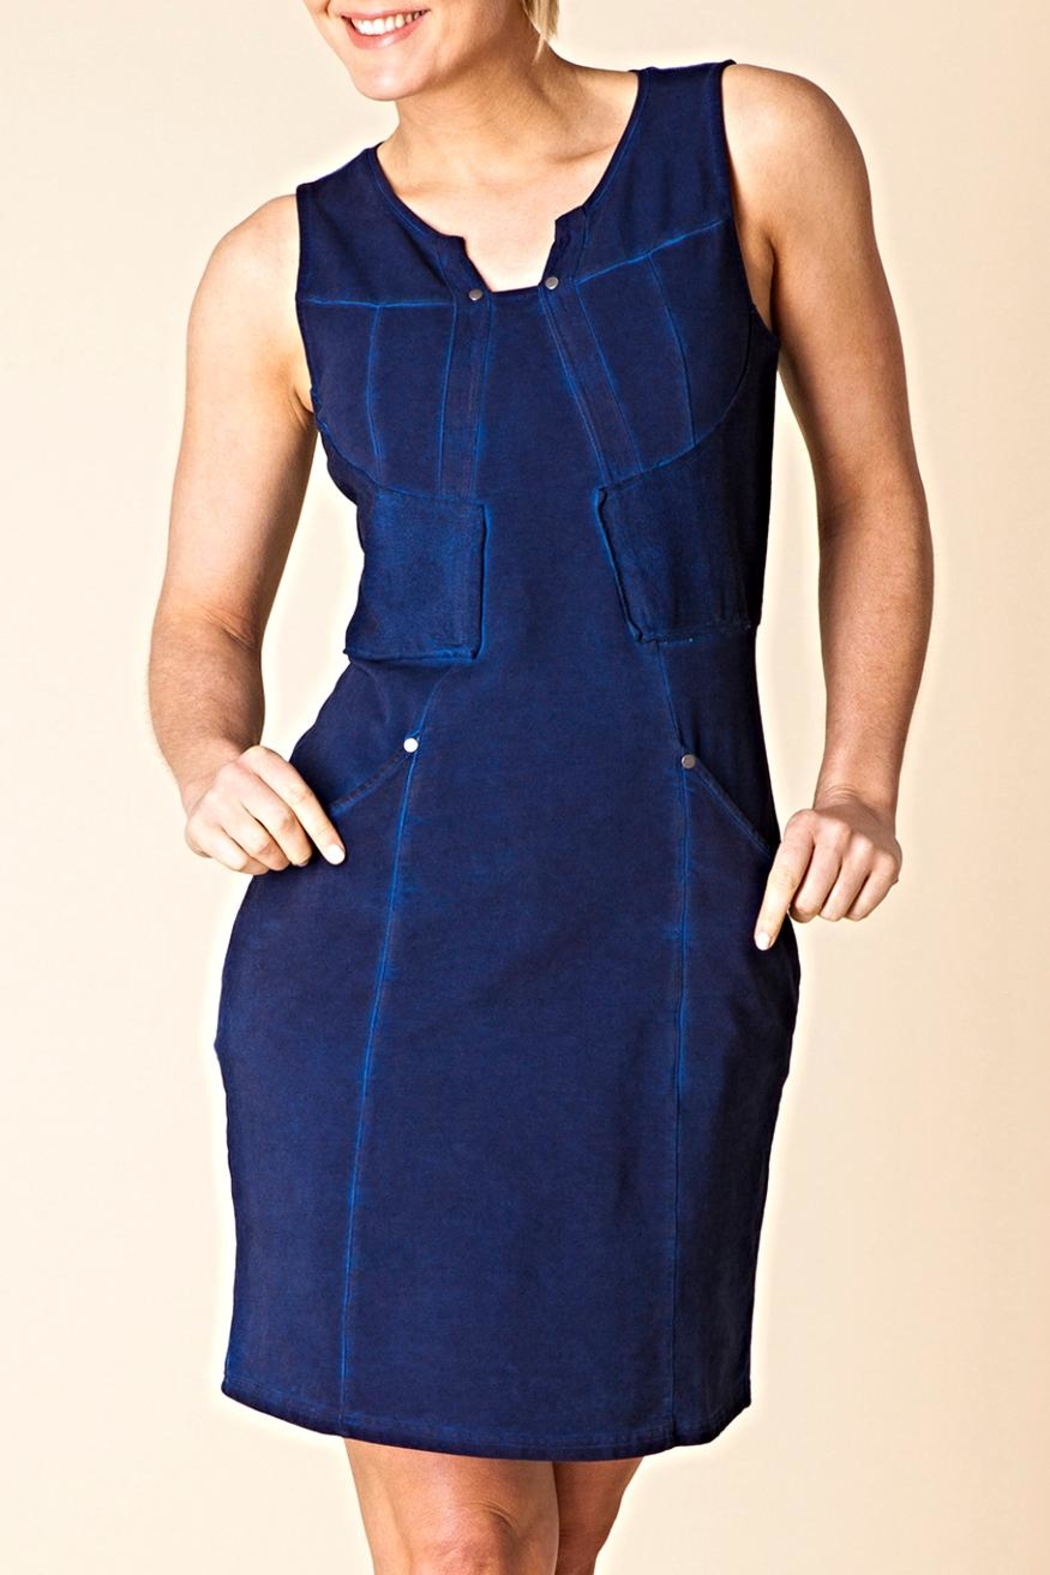 Yest Ultimate Indigo Dress - Main Image